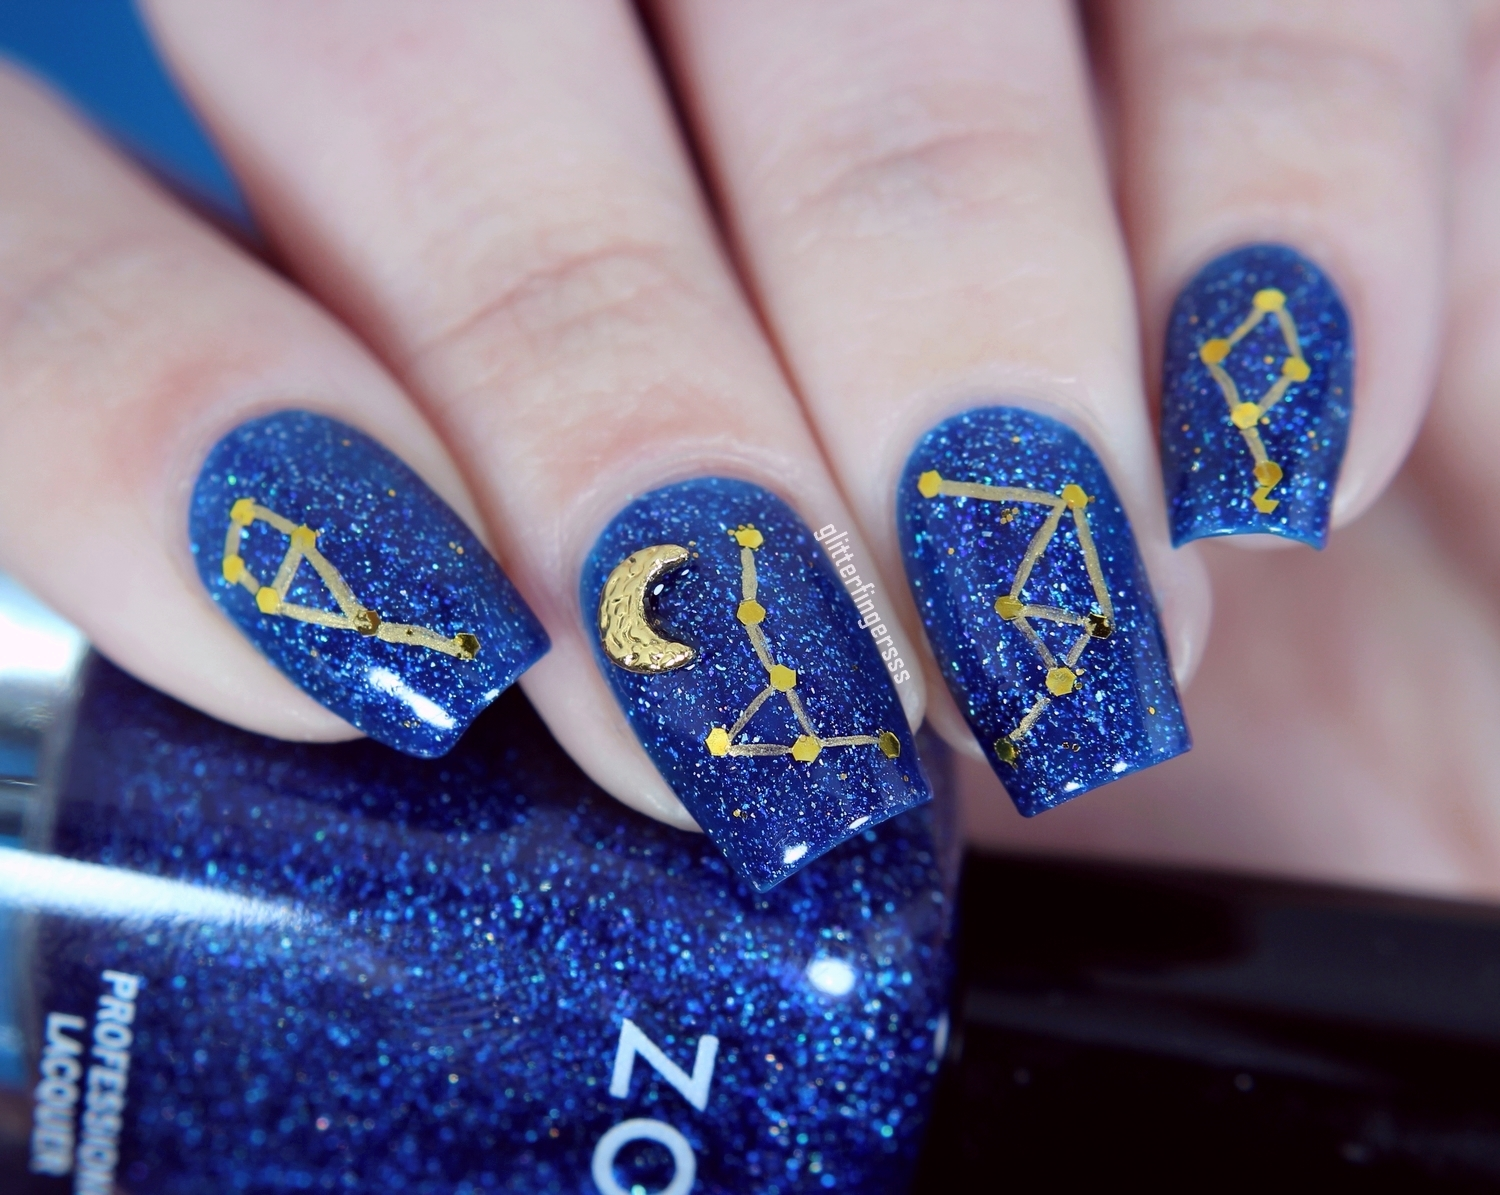 Constellation nail art glitterfingersss in english my base was zoya dream then i stick on the gold glitters totally randomly and i connected the glitters with a detailing brush using mundo de unas gold prinsesfo Gallery